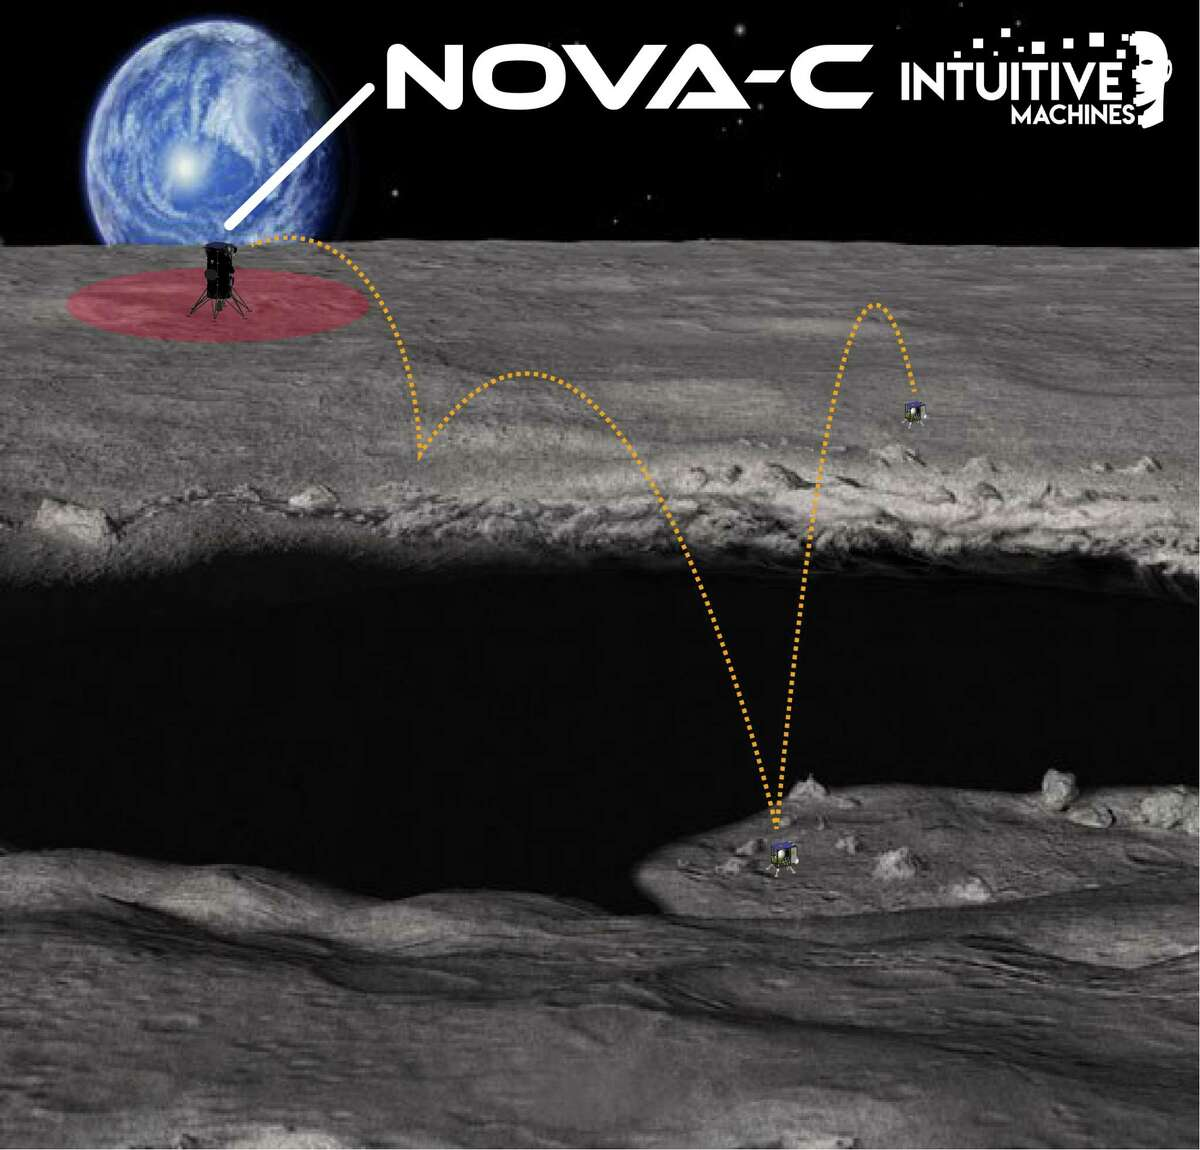 Intuitive Machines' hopper will be like a lander within a lander. The company's Nova-C lander is being developed to carry commercial cargo and NASA-provided payloads to the lunar surface. On subsequent missions, the navigation system that guides Nova-C to the moon's surface will break away from the lander and become the hopper, ready to explore.